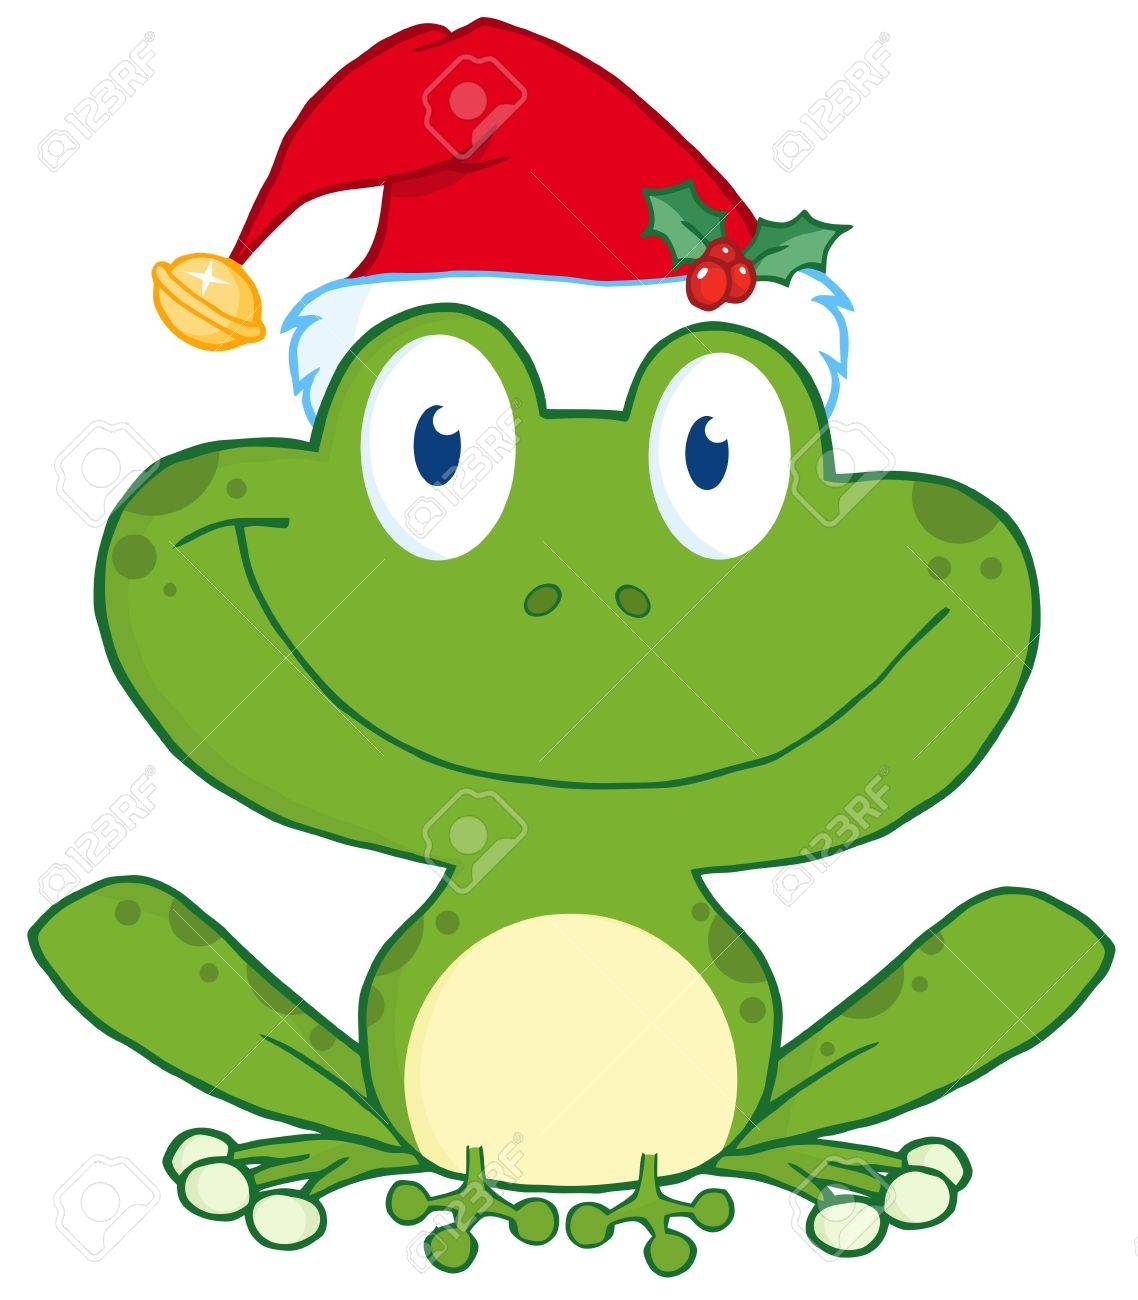 Happy Frog With Santa Royalty Free Cliparts, Vectors, And Stock Illustration. Image 11808054.